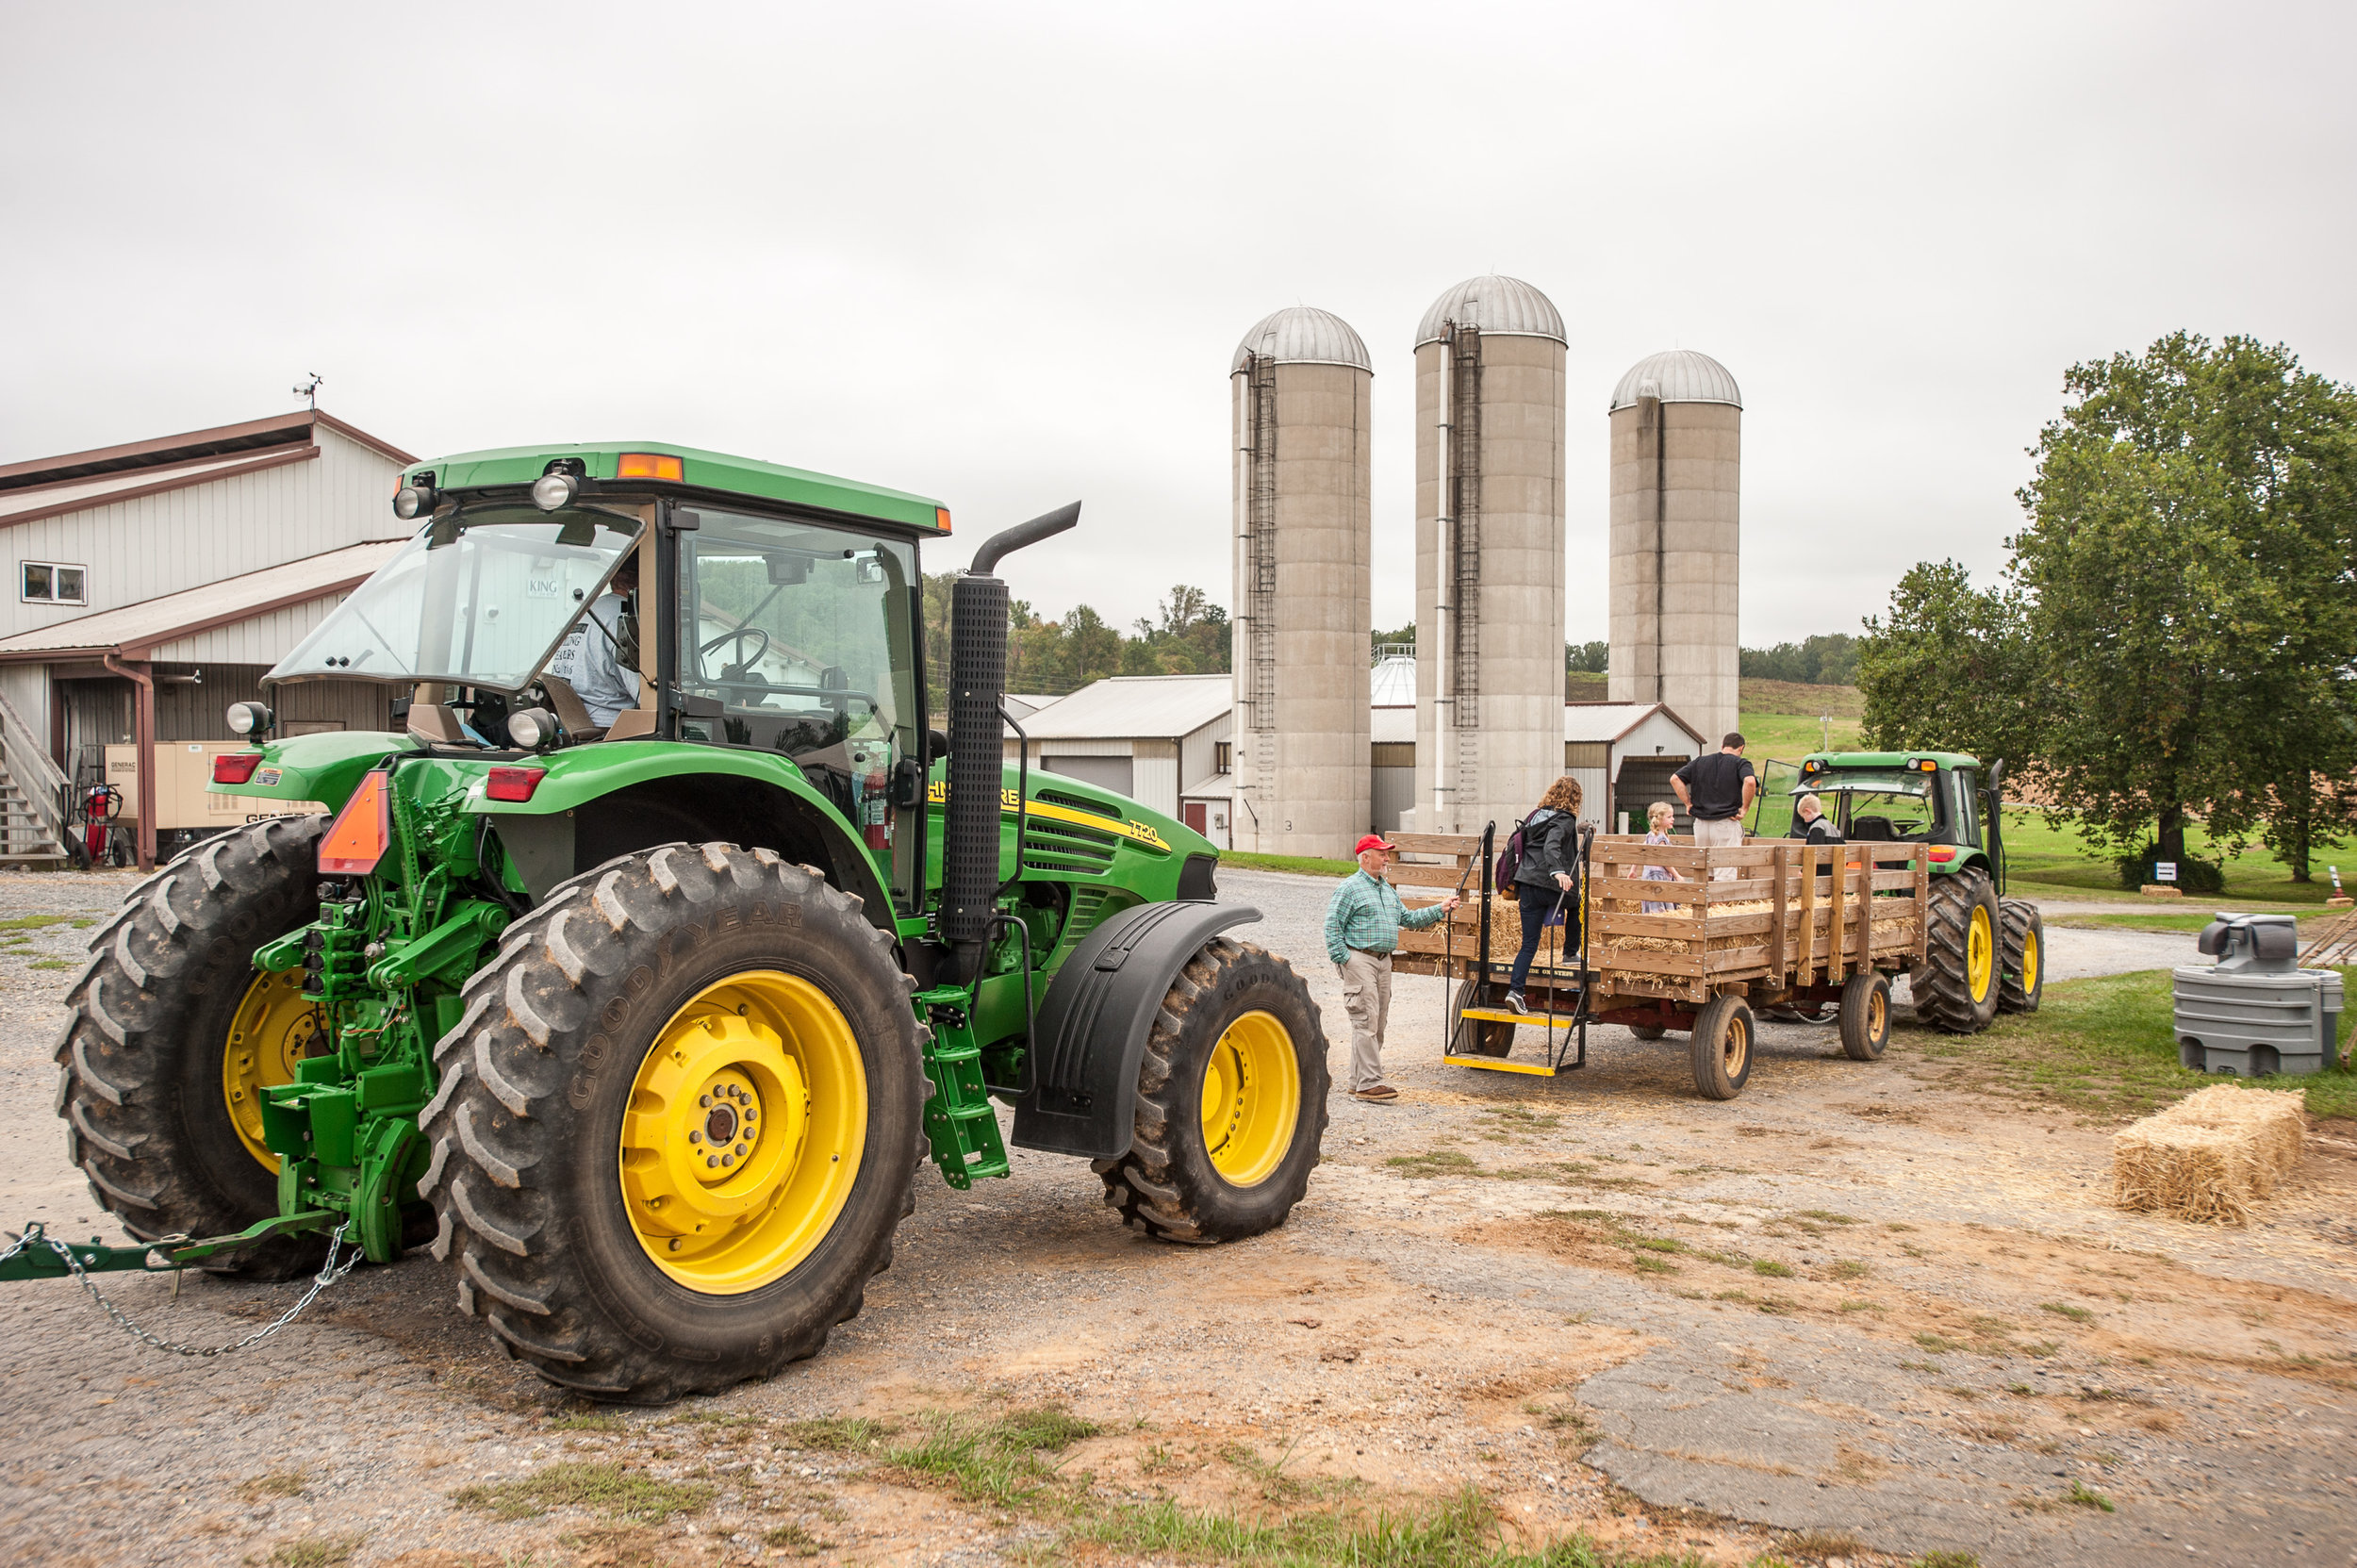 Image by Edwin Remsberg. Image shows a tractor with the slow moving vehicle emblem.